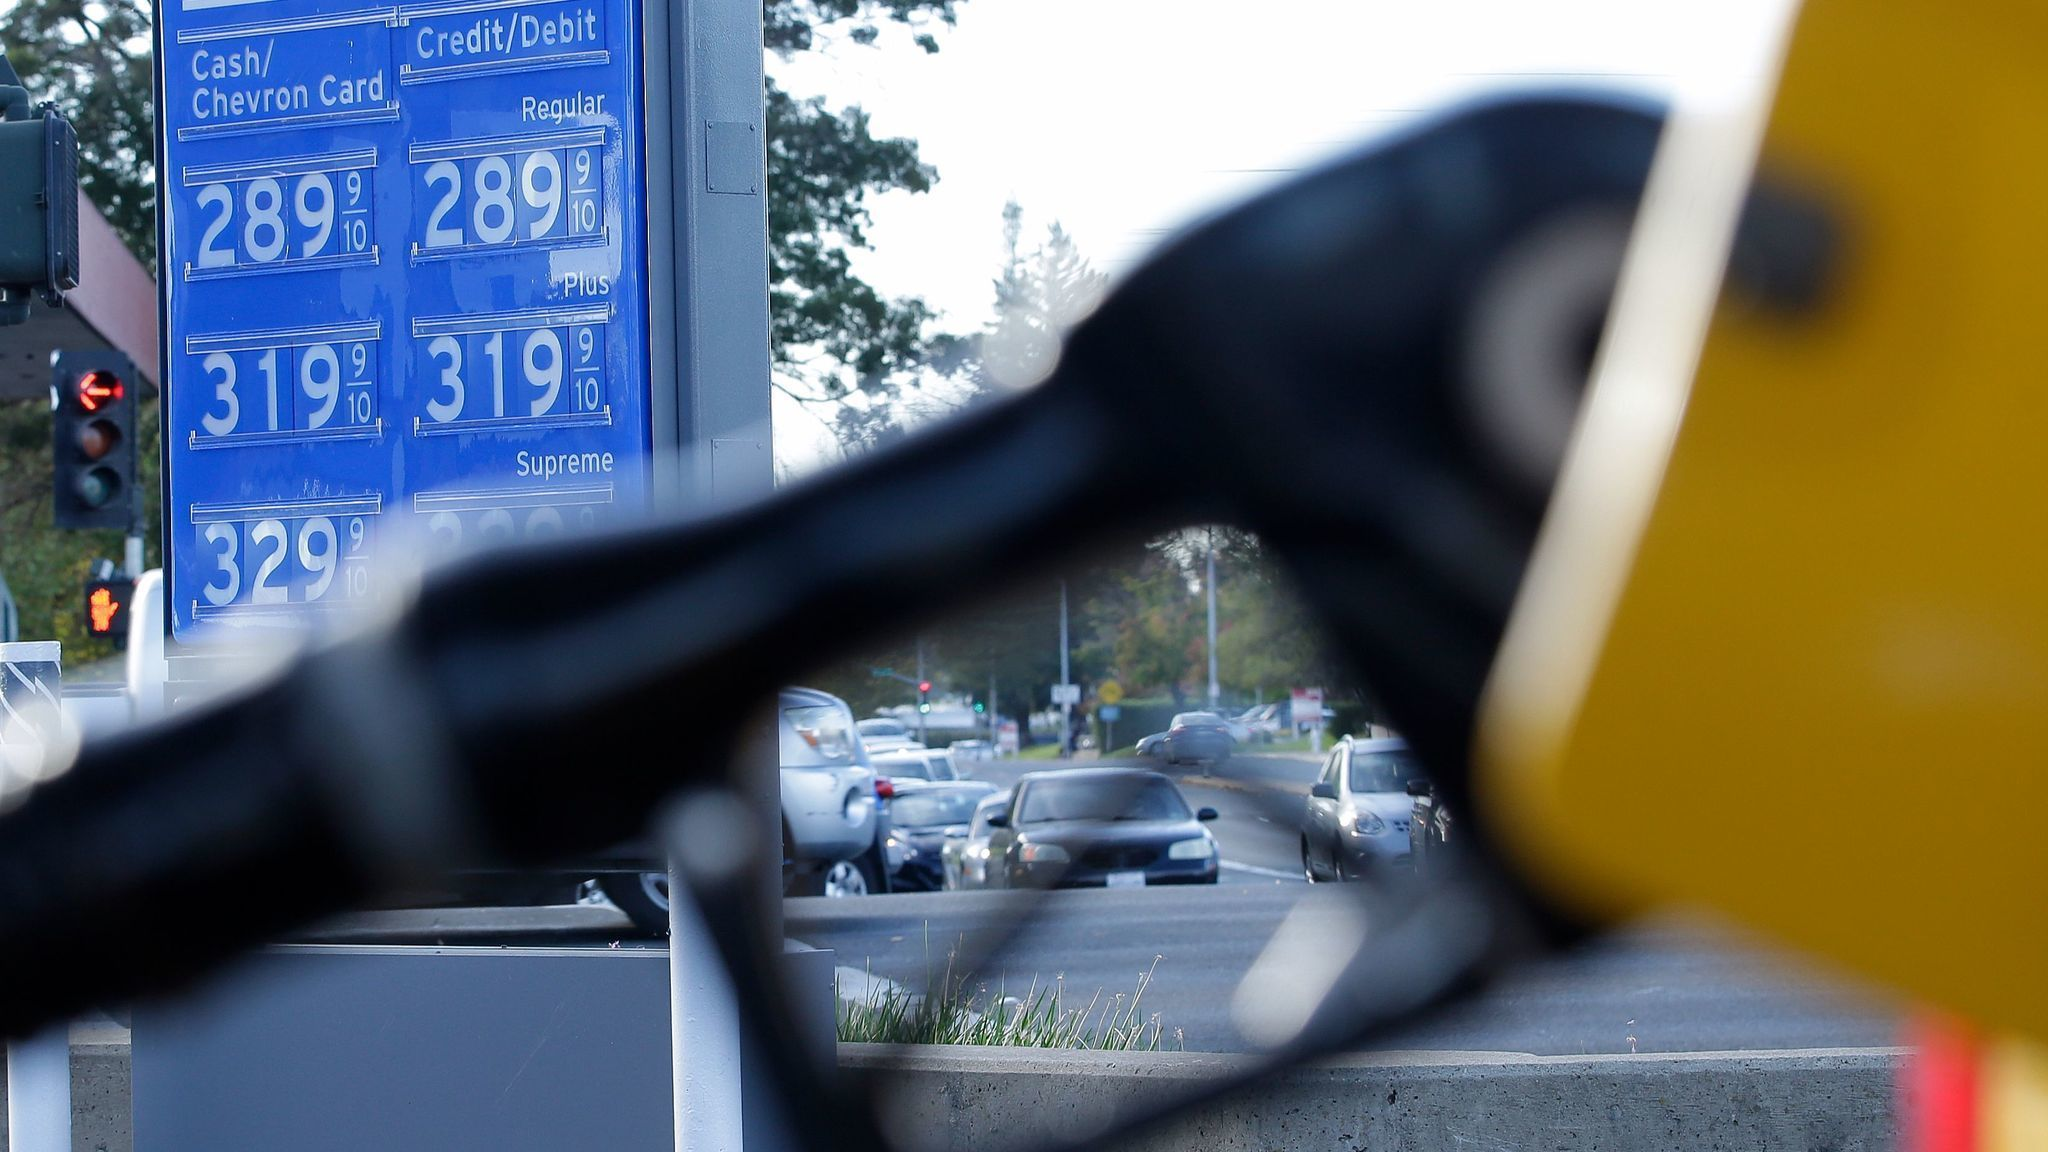 Gas prices are displayed at a Chevron station in Sacramento two days before the state gas tax was increased by 12 cents a gallon. (Rich Pedroncelli / Associated Press)